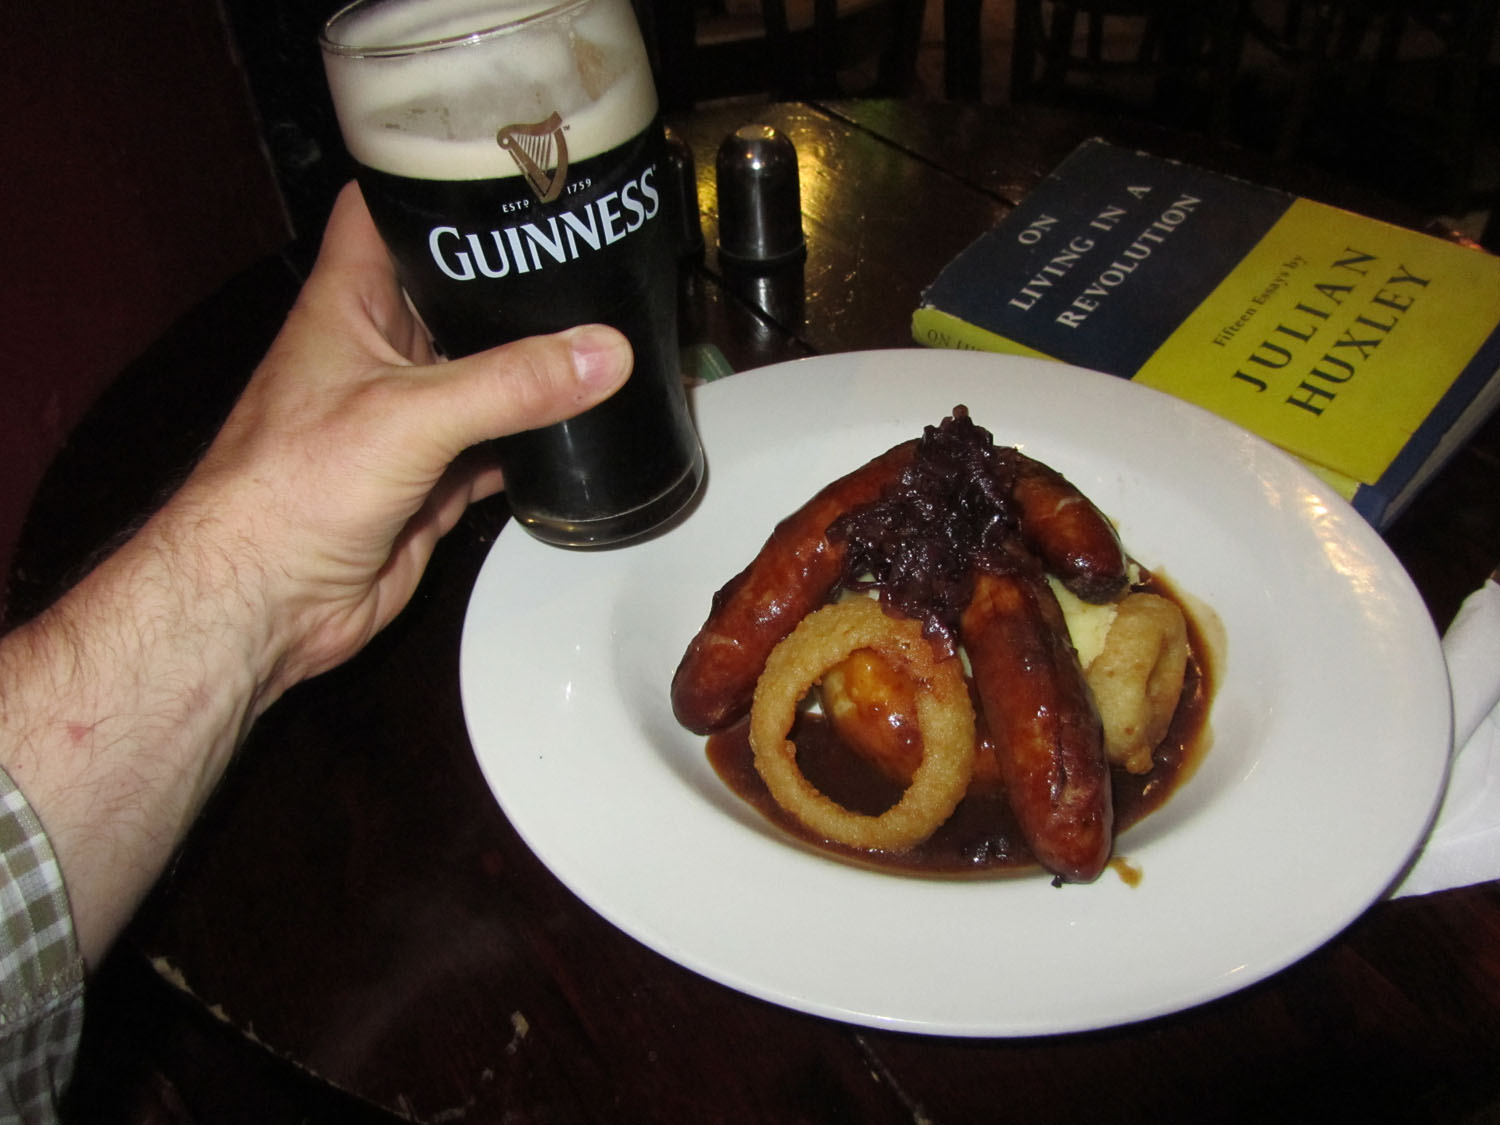 Ireland-Food-And-Drink-Bangers-Mash-Guinness